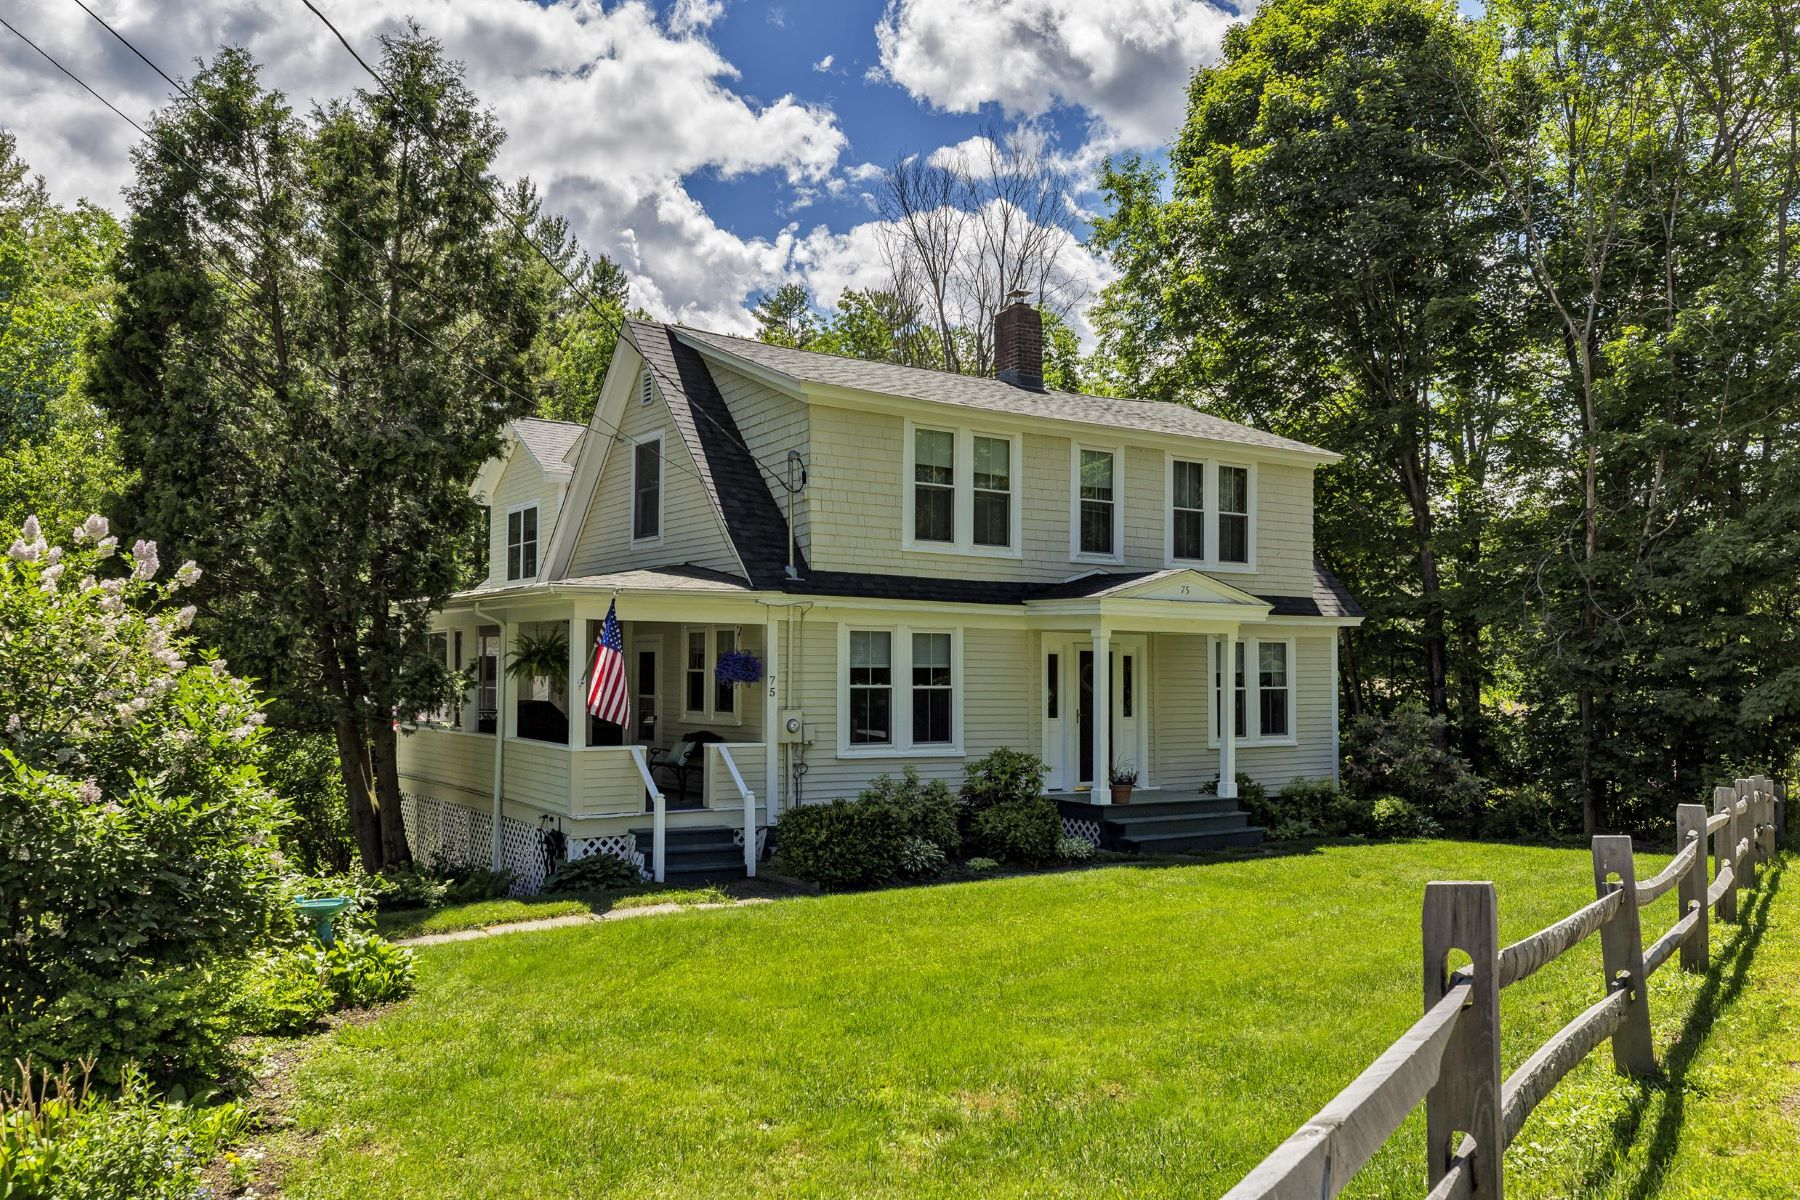 Single Family Homes for Active at Completely Renovated Home Close to Town 75 Parkside Rd New London, New Hampshire 03257 United States